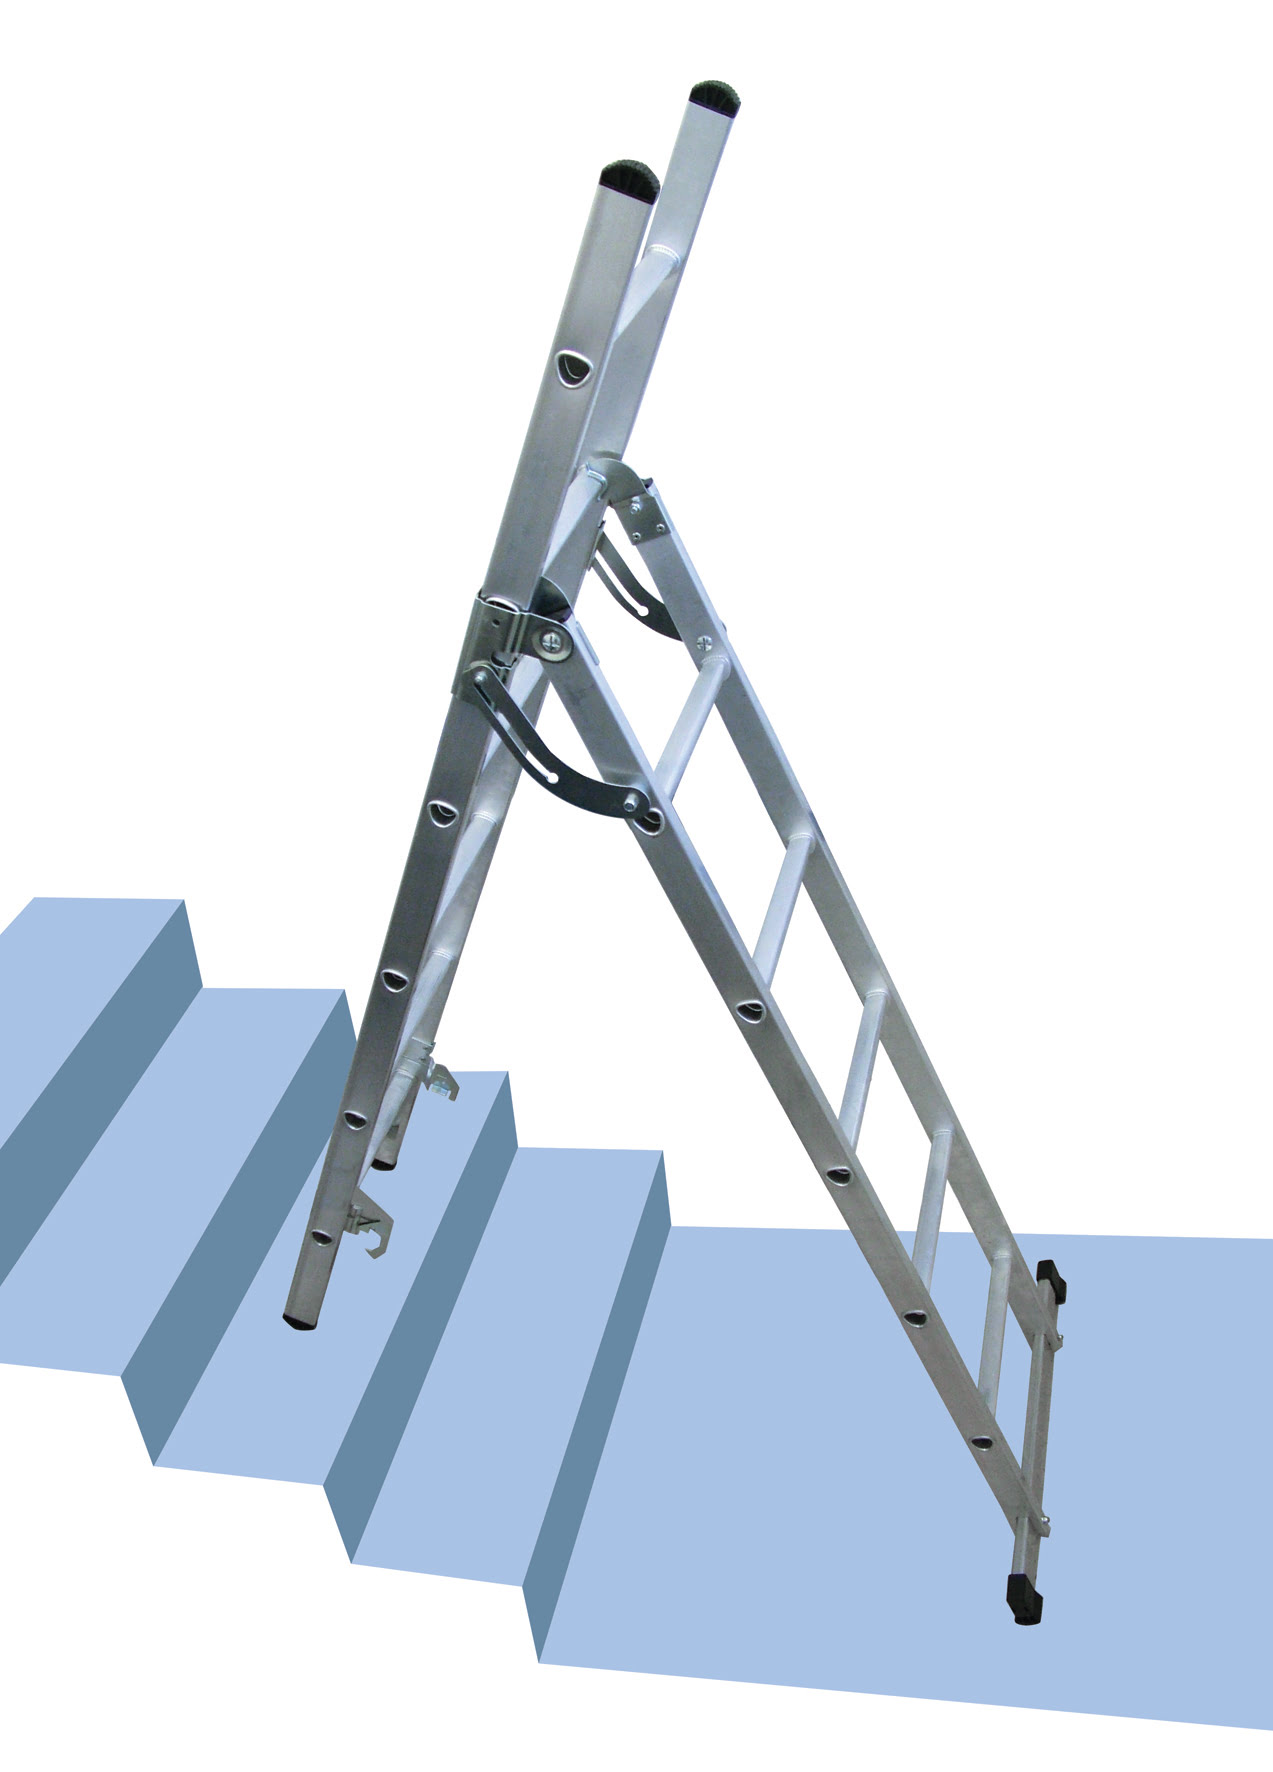 3 Way Combination Ladder UK Manufactured Warehouse and  : 3 way combination 2 from www.safetysteps.co.uk size 1273 x 1772 jpeg 1166kB